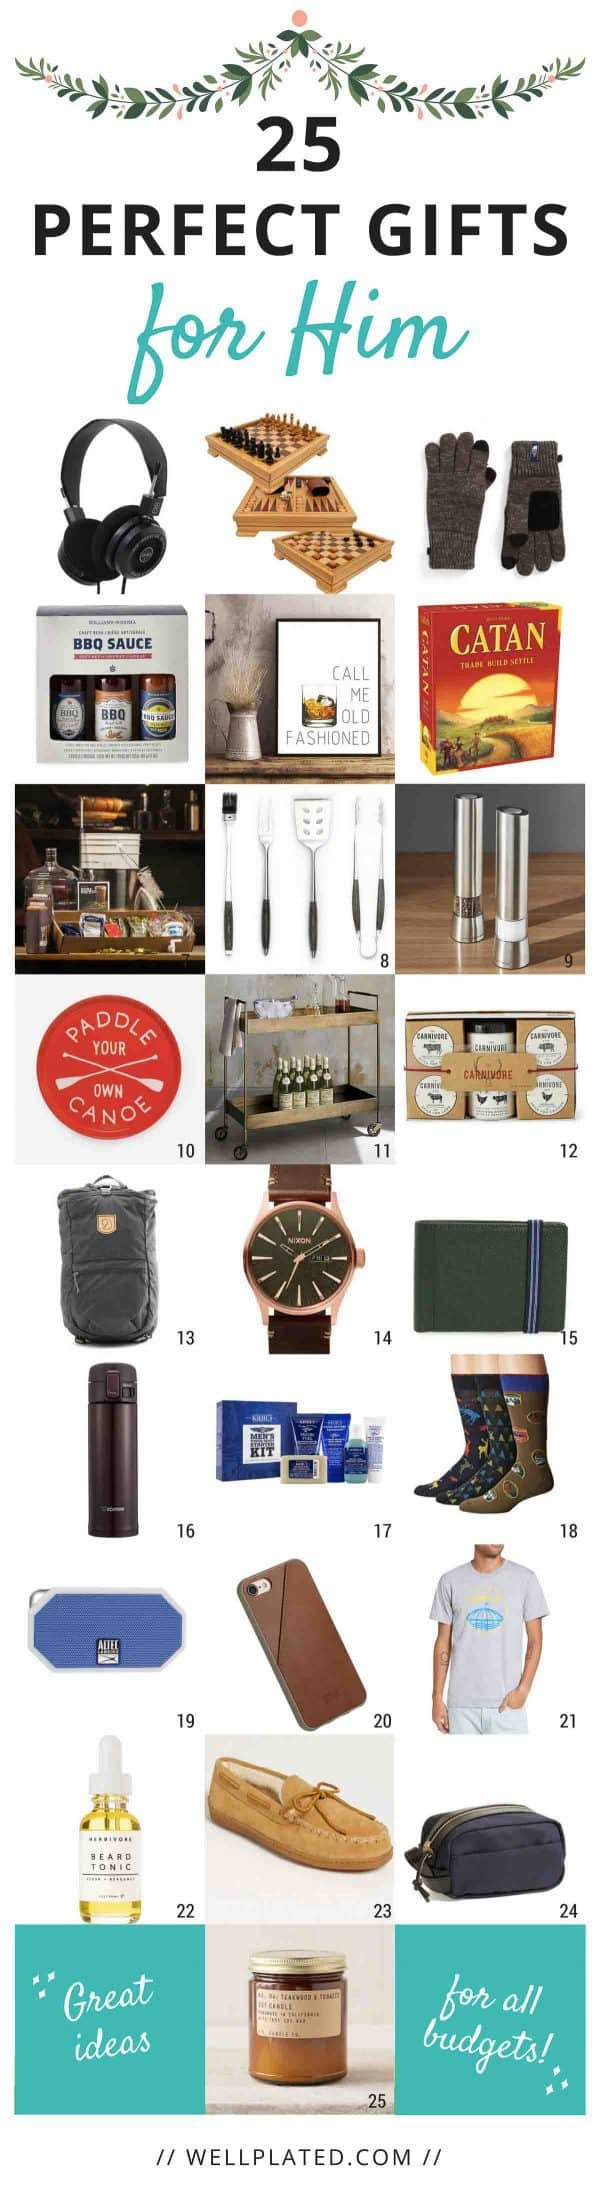 25 Unique Gift Ideas for Your Husband, Dad, Boyfriend, and More!